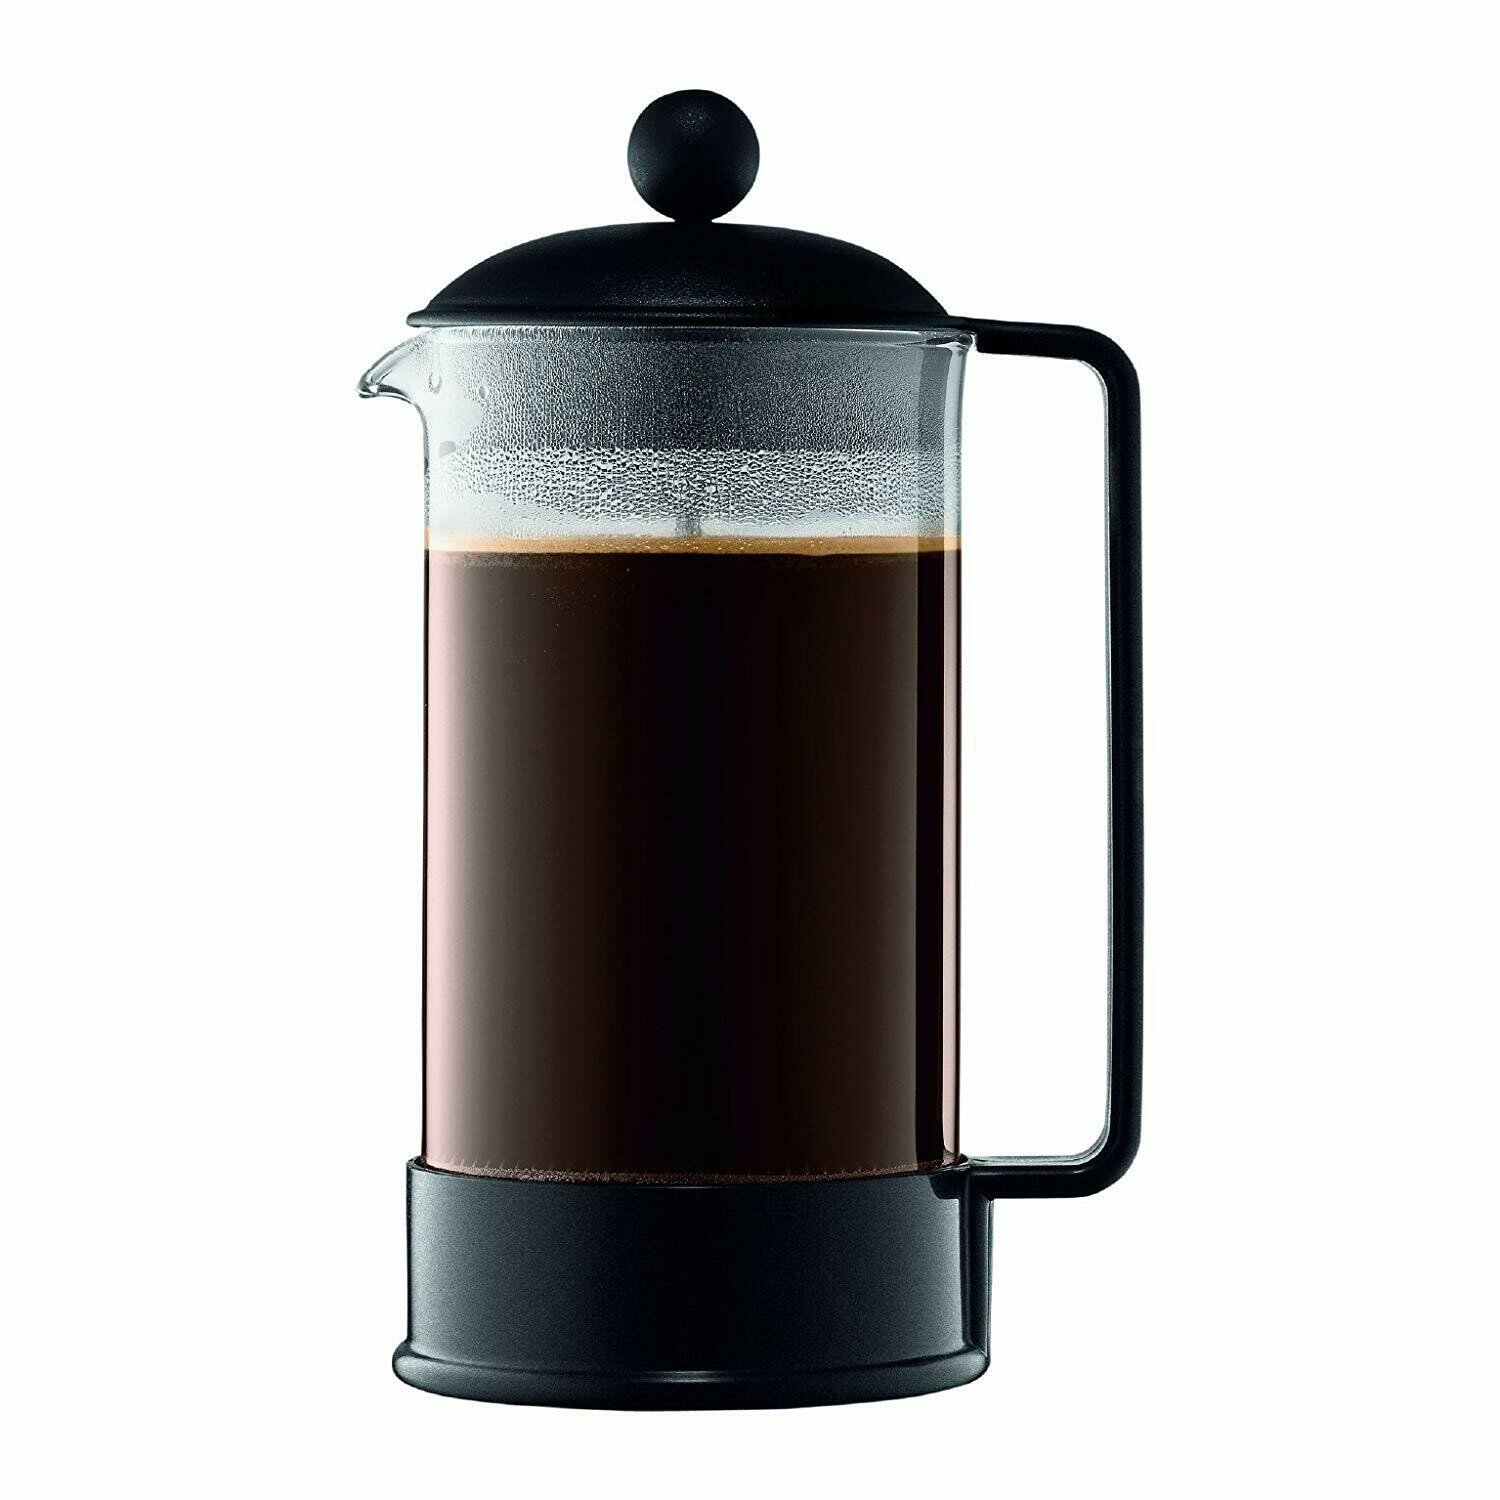 Bodum French Press Brewer